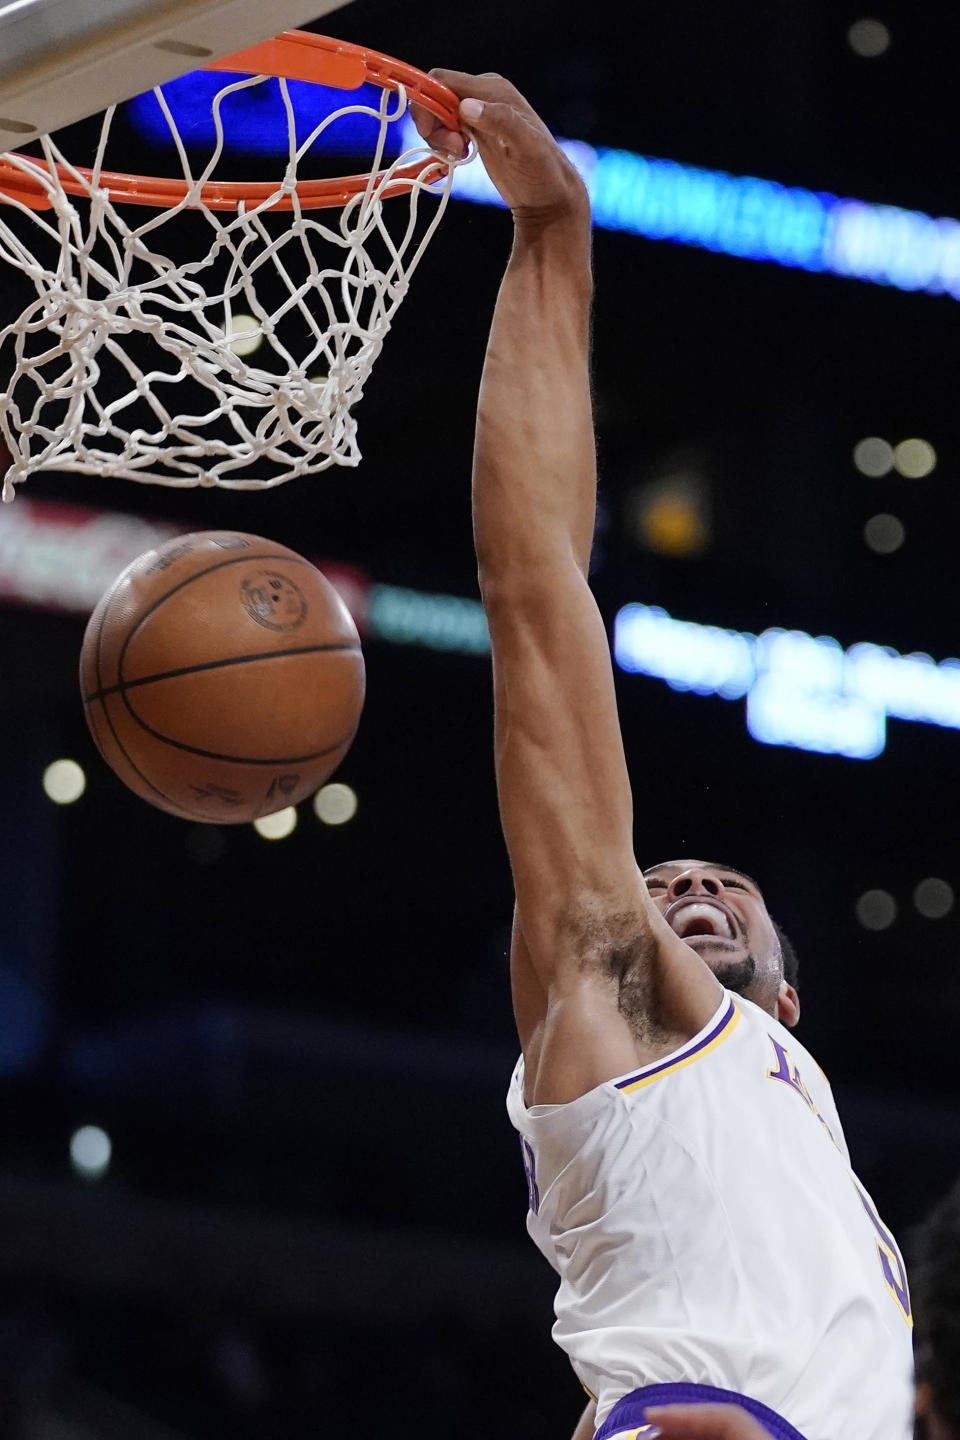 Los Angeles Lakers guard Talen Horton-Tucker dunks during the first half of a preseason NBA basketball game against the Brooklyn Nets Sunday, Oct. 3, 2021, in Los Angeles. (AP Photo/Mark J. Terrill)